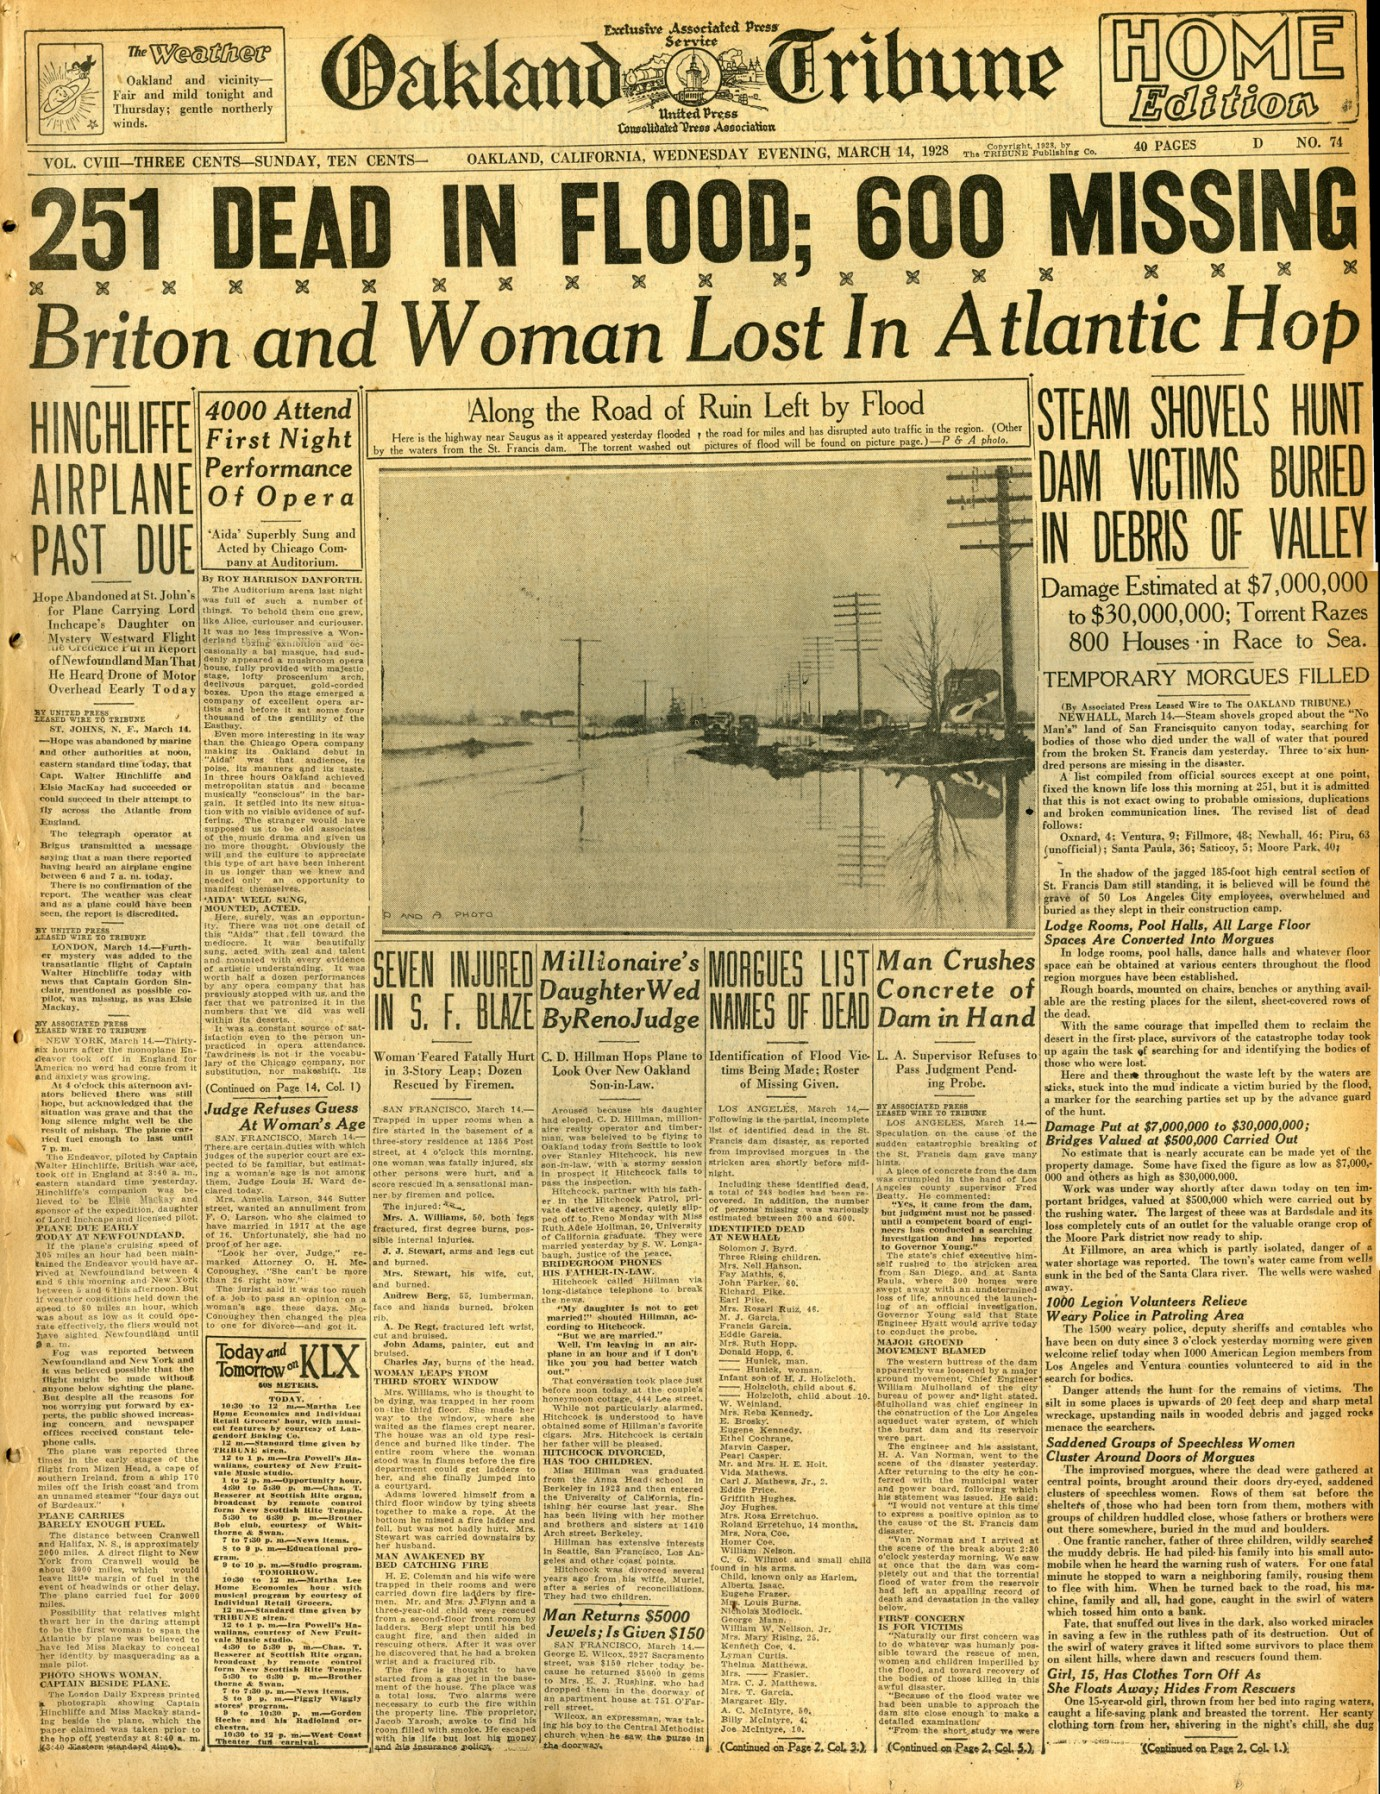 St. Francis Dam Disaster.  OAKLAND TRIBUNE (NEWSPAPER),  WEDNESDAY, MARCH 14, 1928